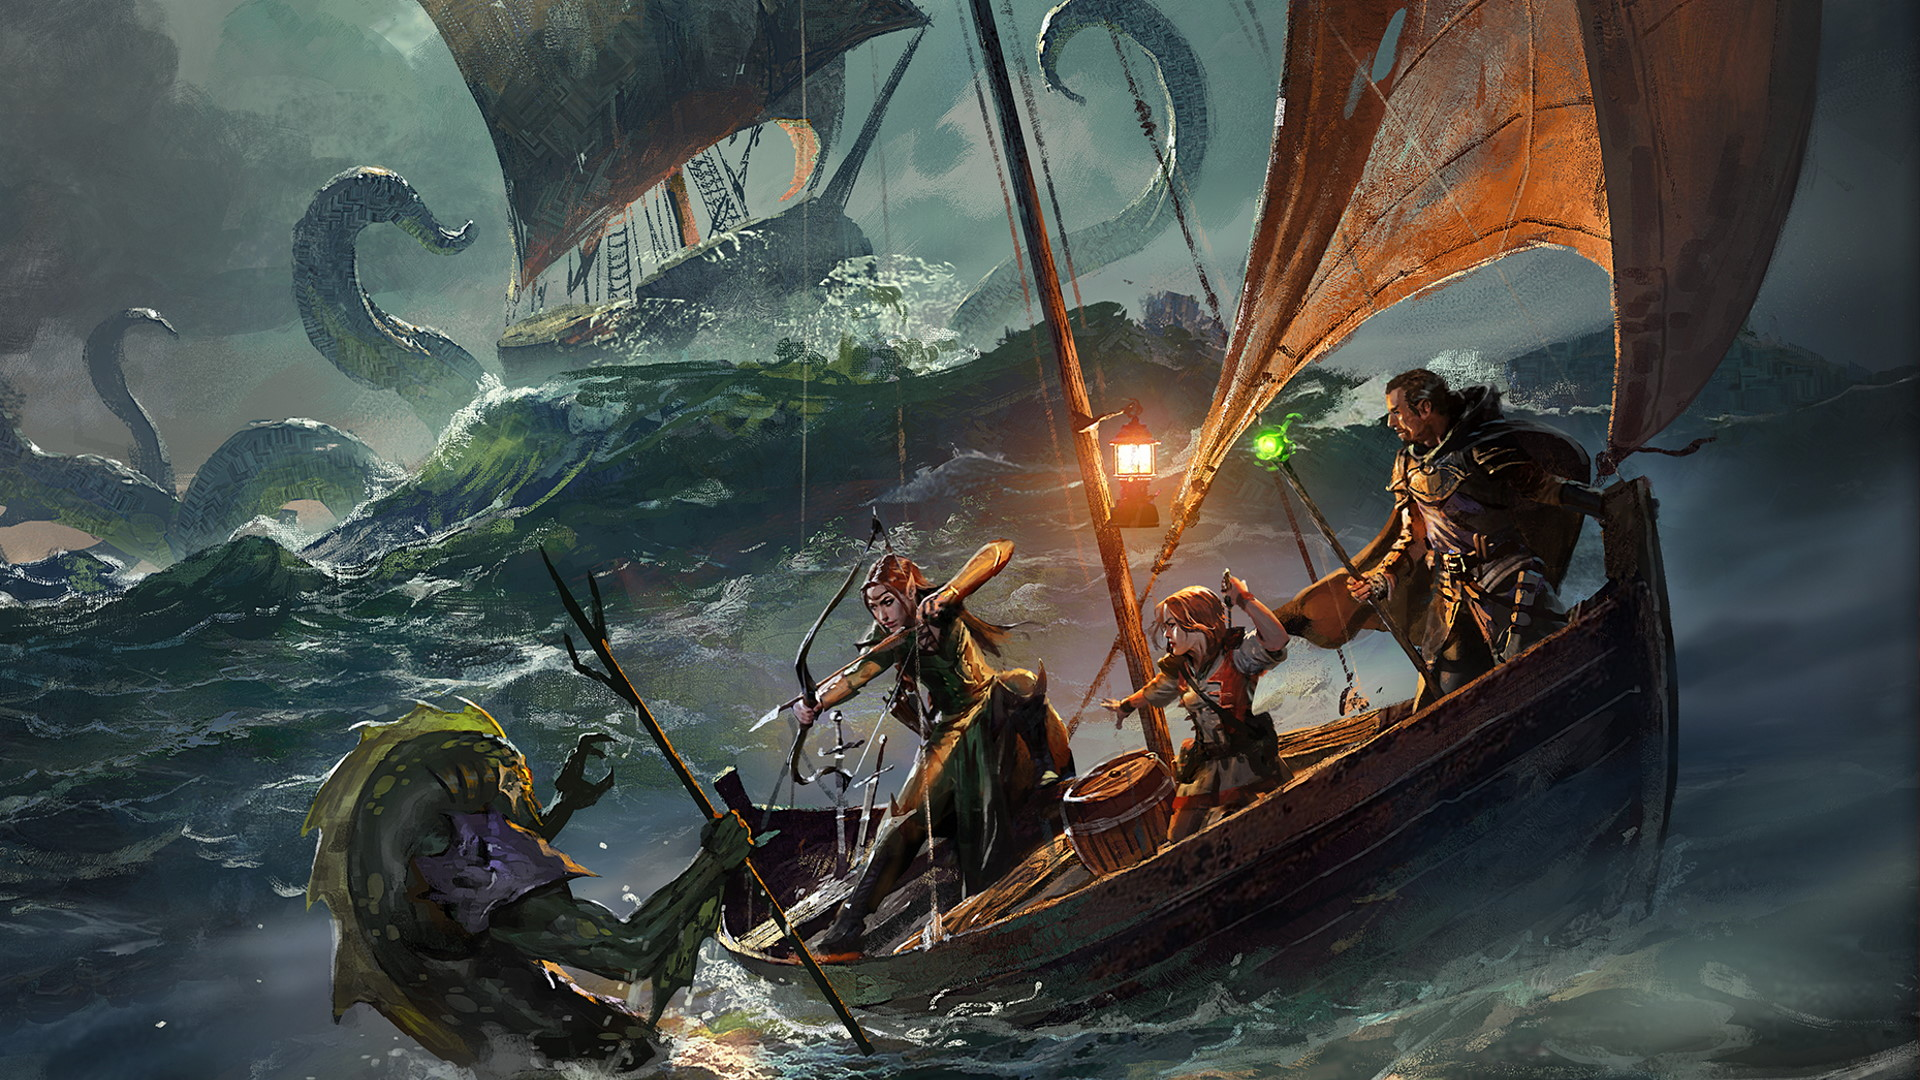 D&D on the rise: are we getting to see new worlds?